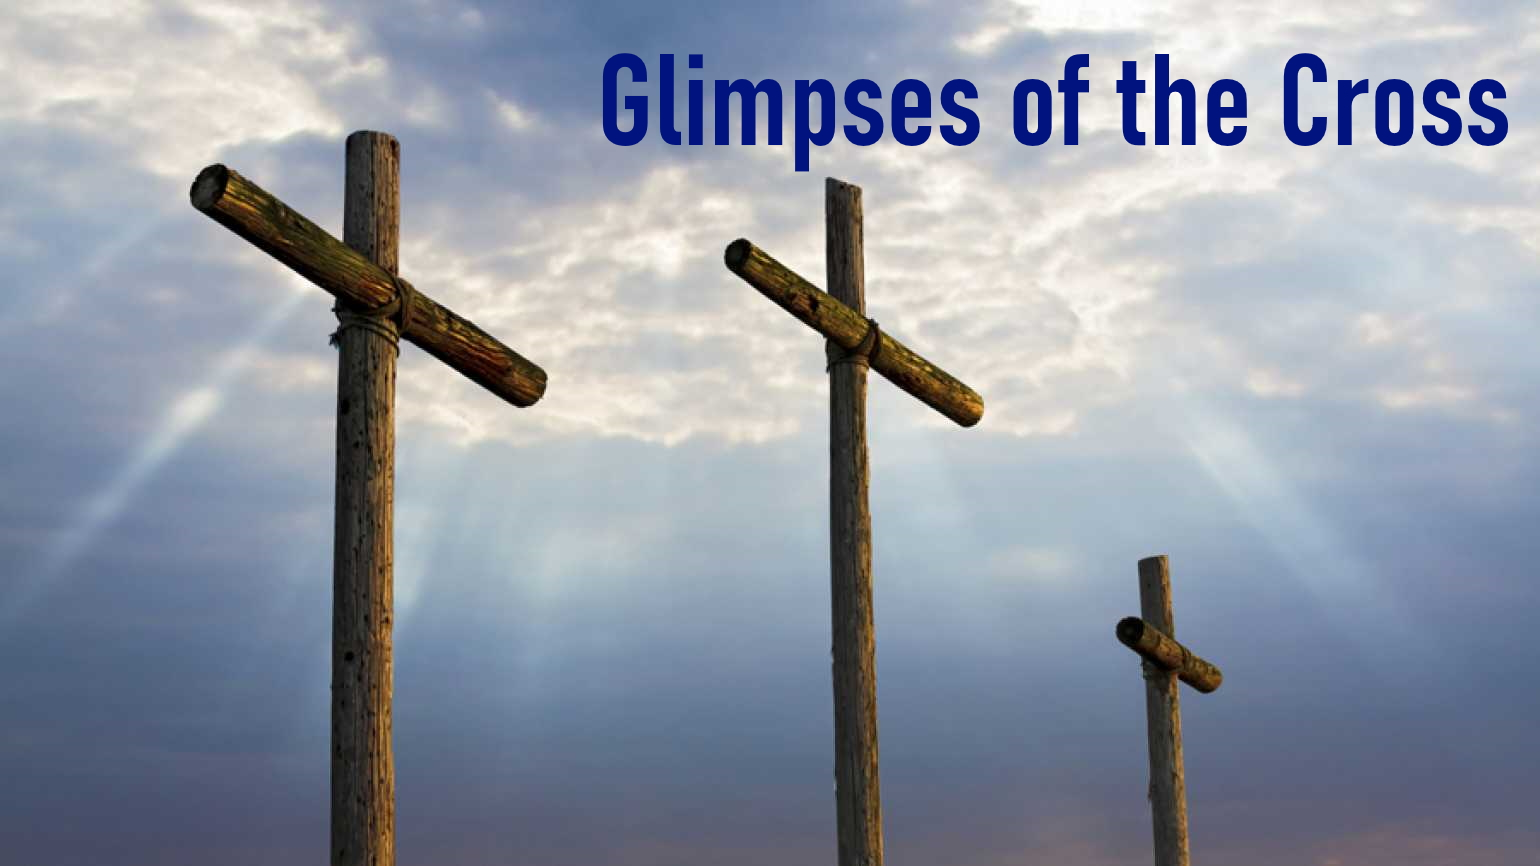 Glimpses of the Cross